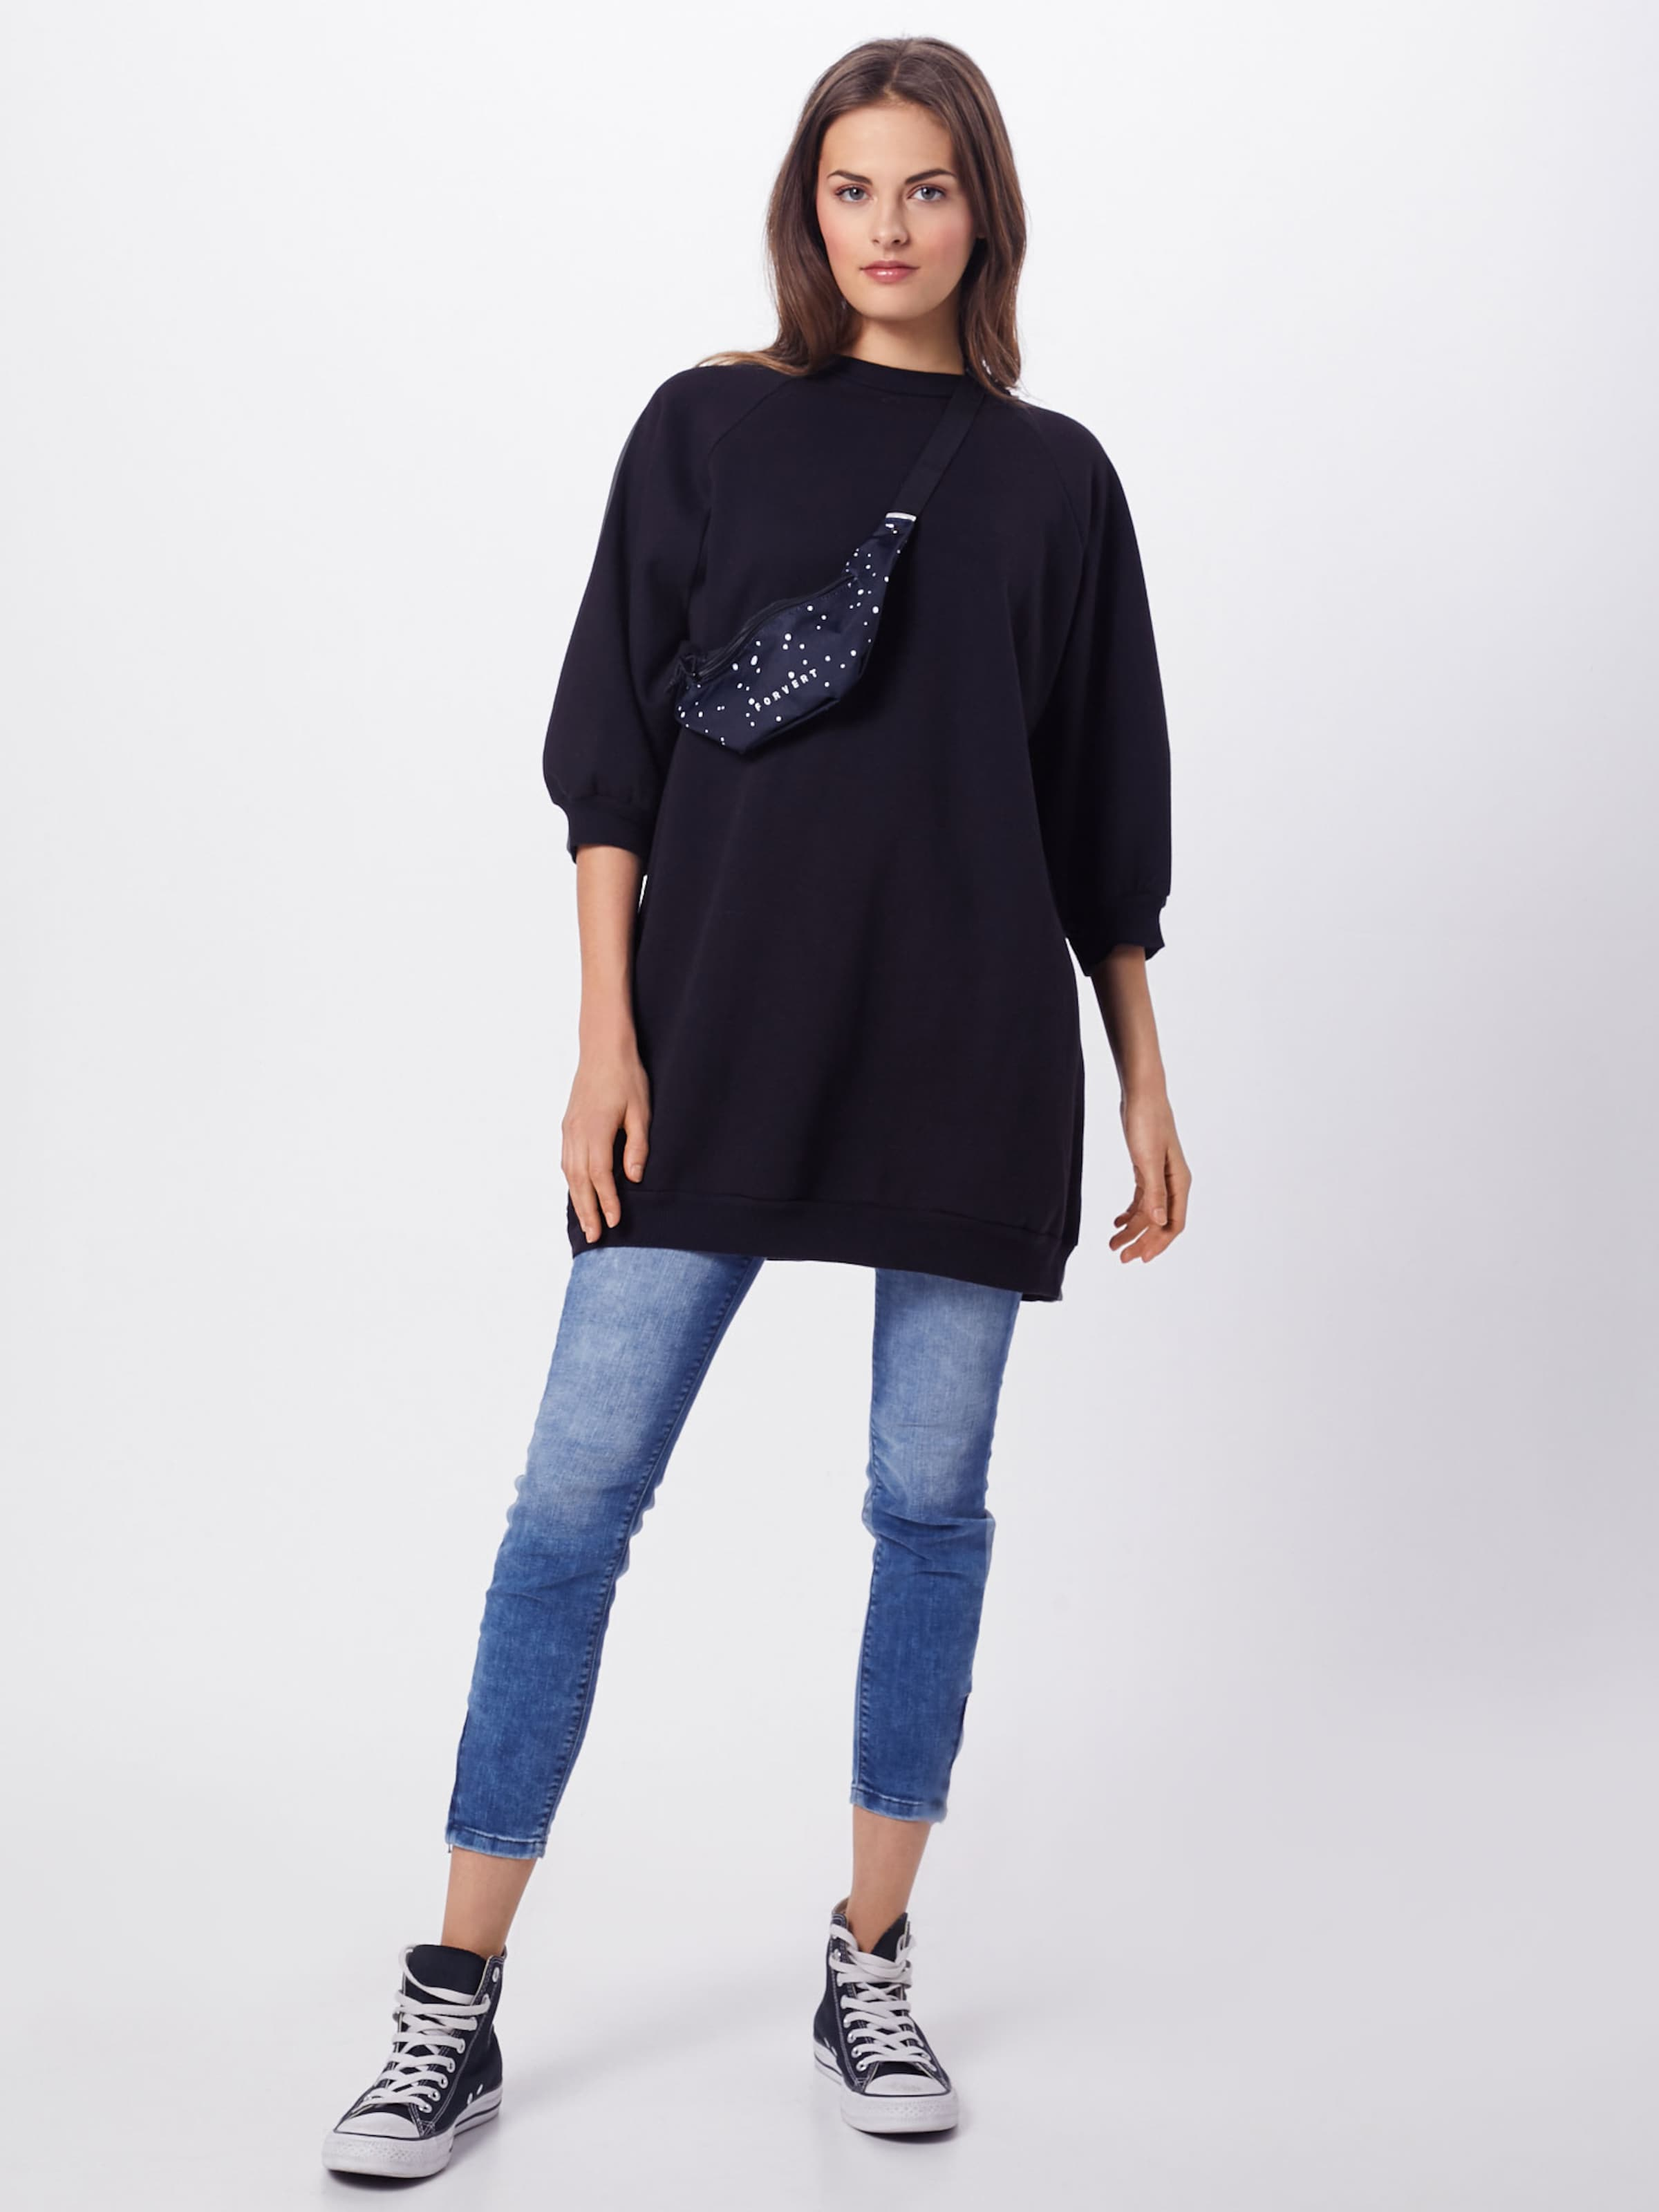 'super Ragdoll Sweat Flame shirt Sweatshirt' RoseNoir La Oversized En IbW29YHeDE